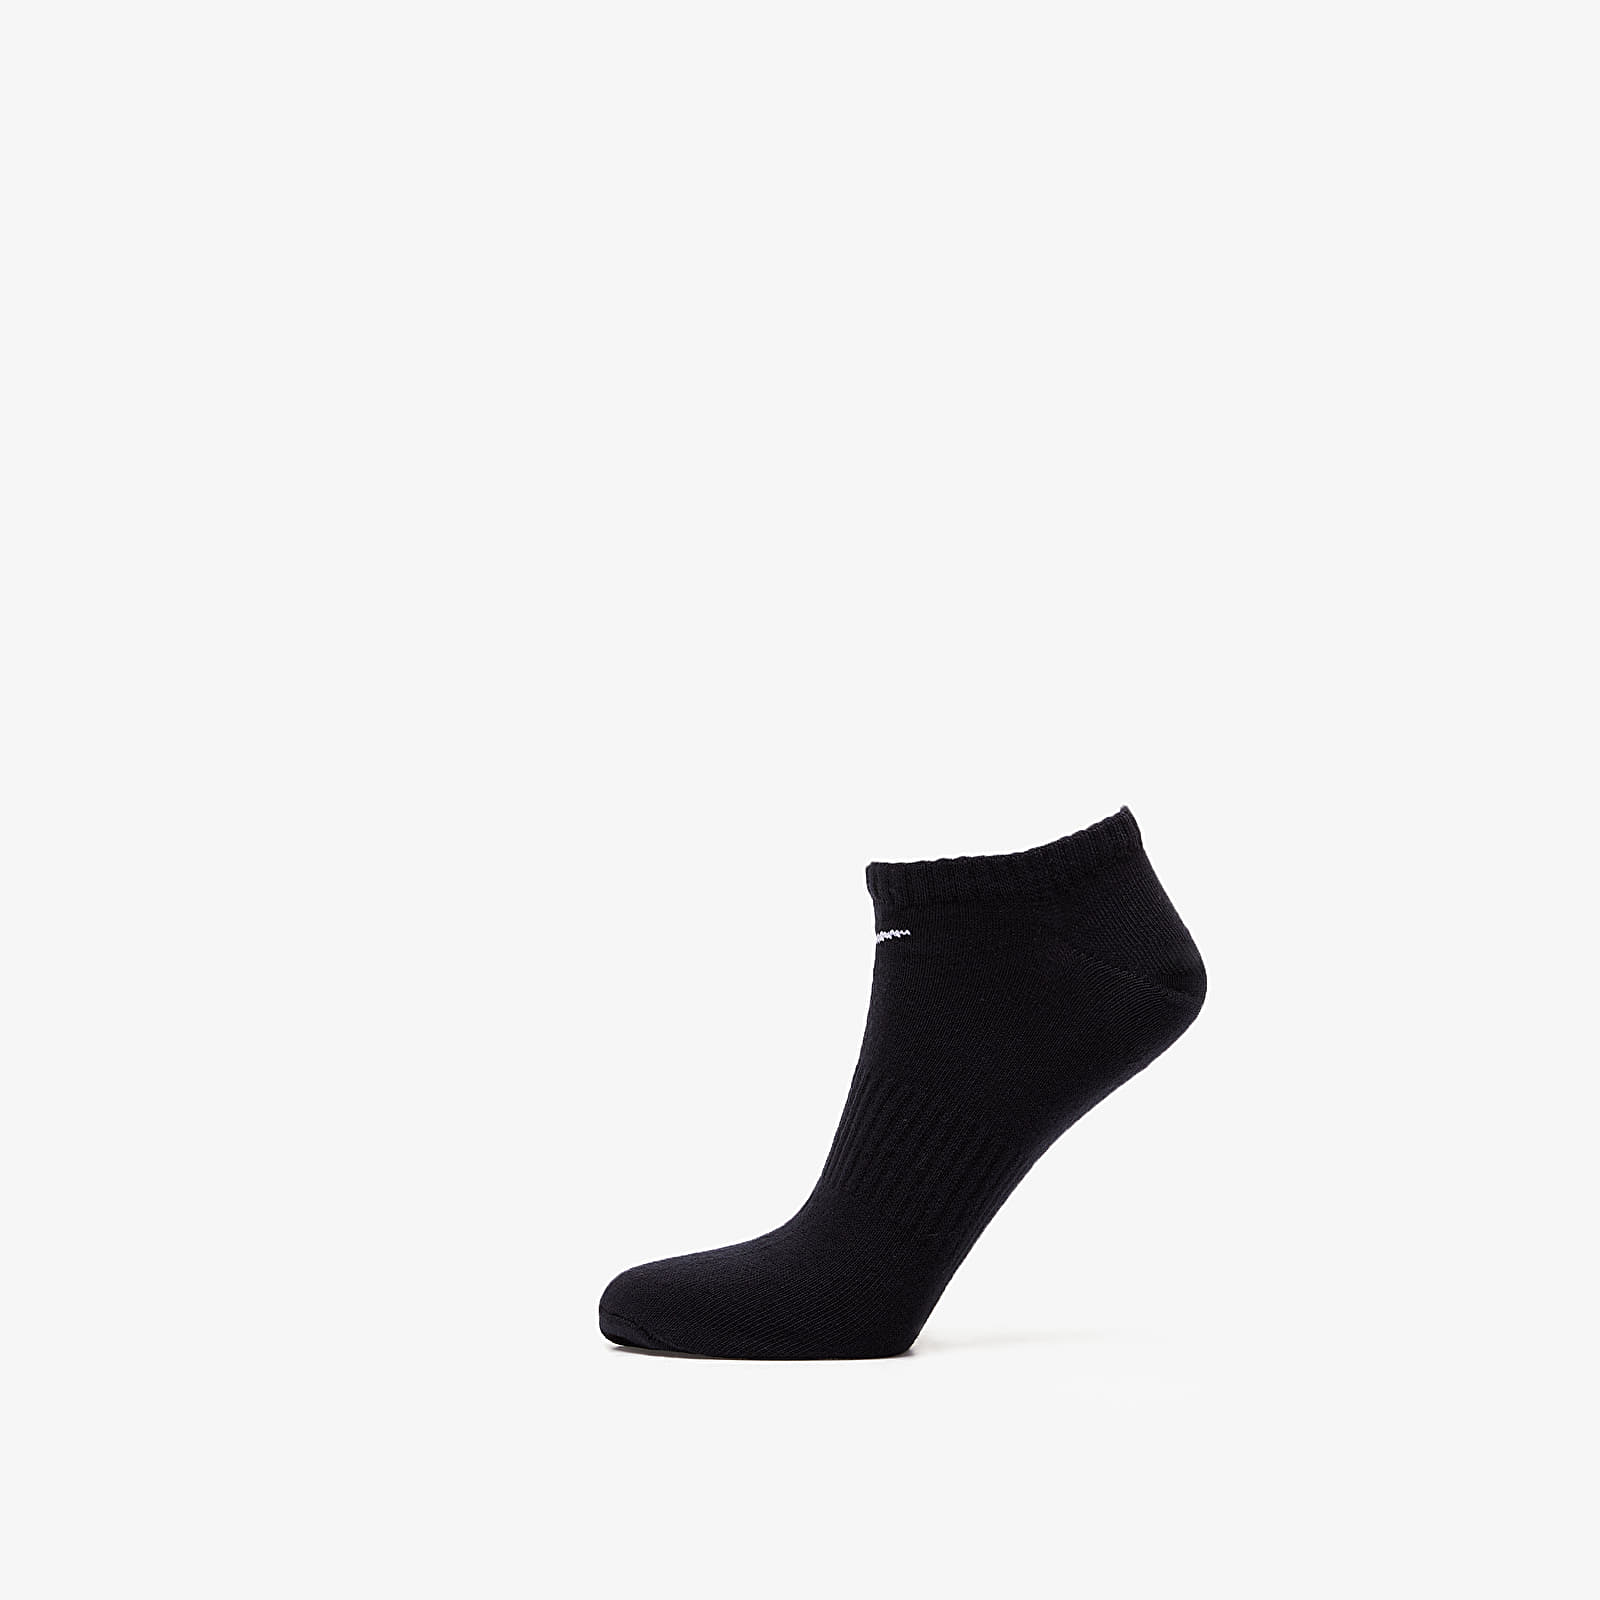 Nike Everyday Lightweight Socks (3 Pairs)